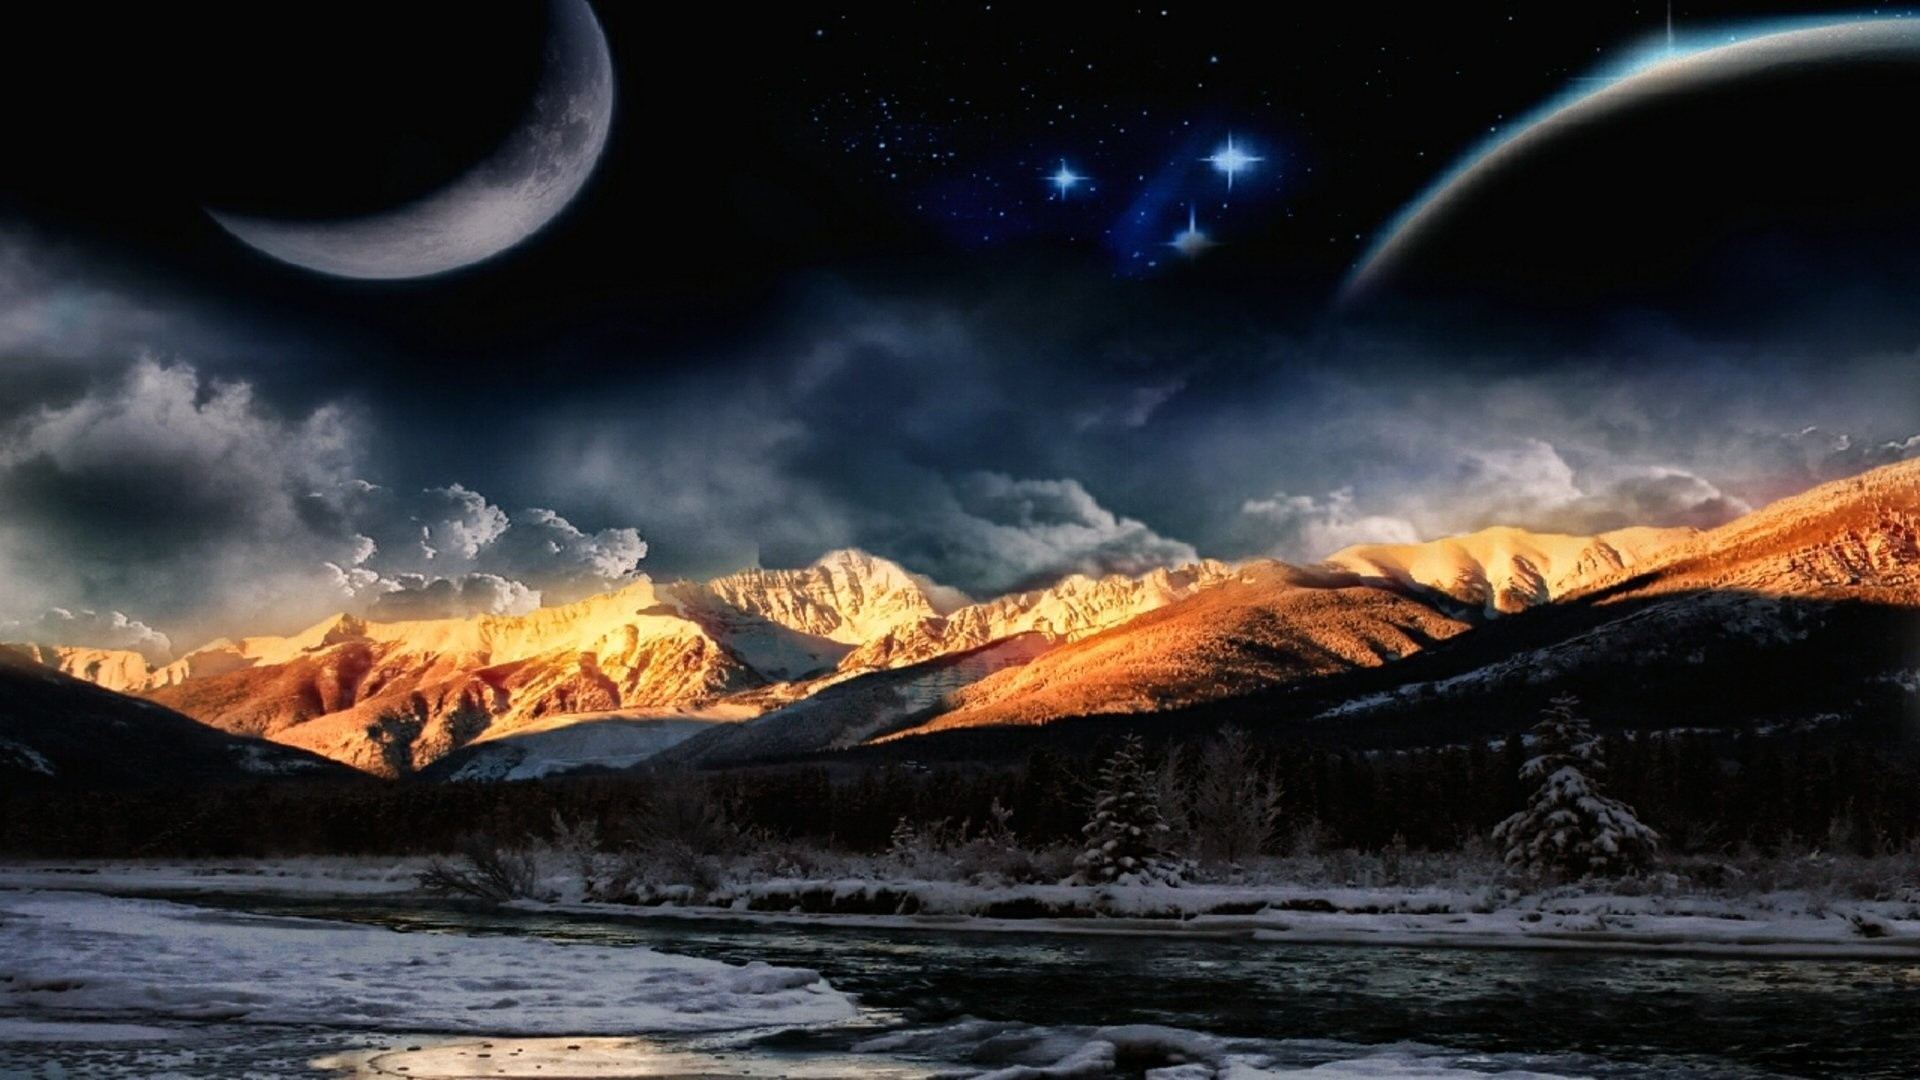 planets-over-the-mountains-space-planet-night-free-